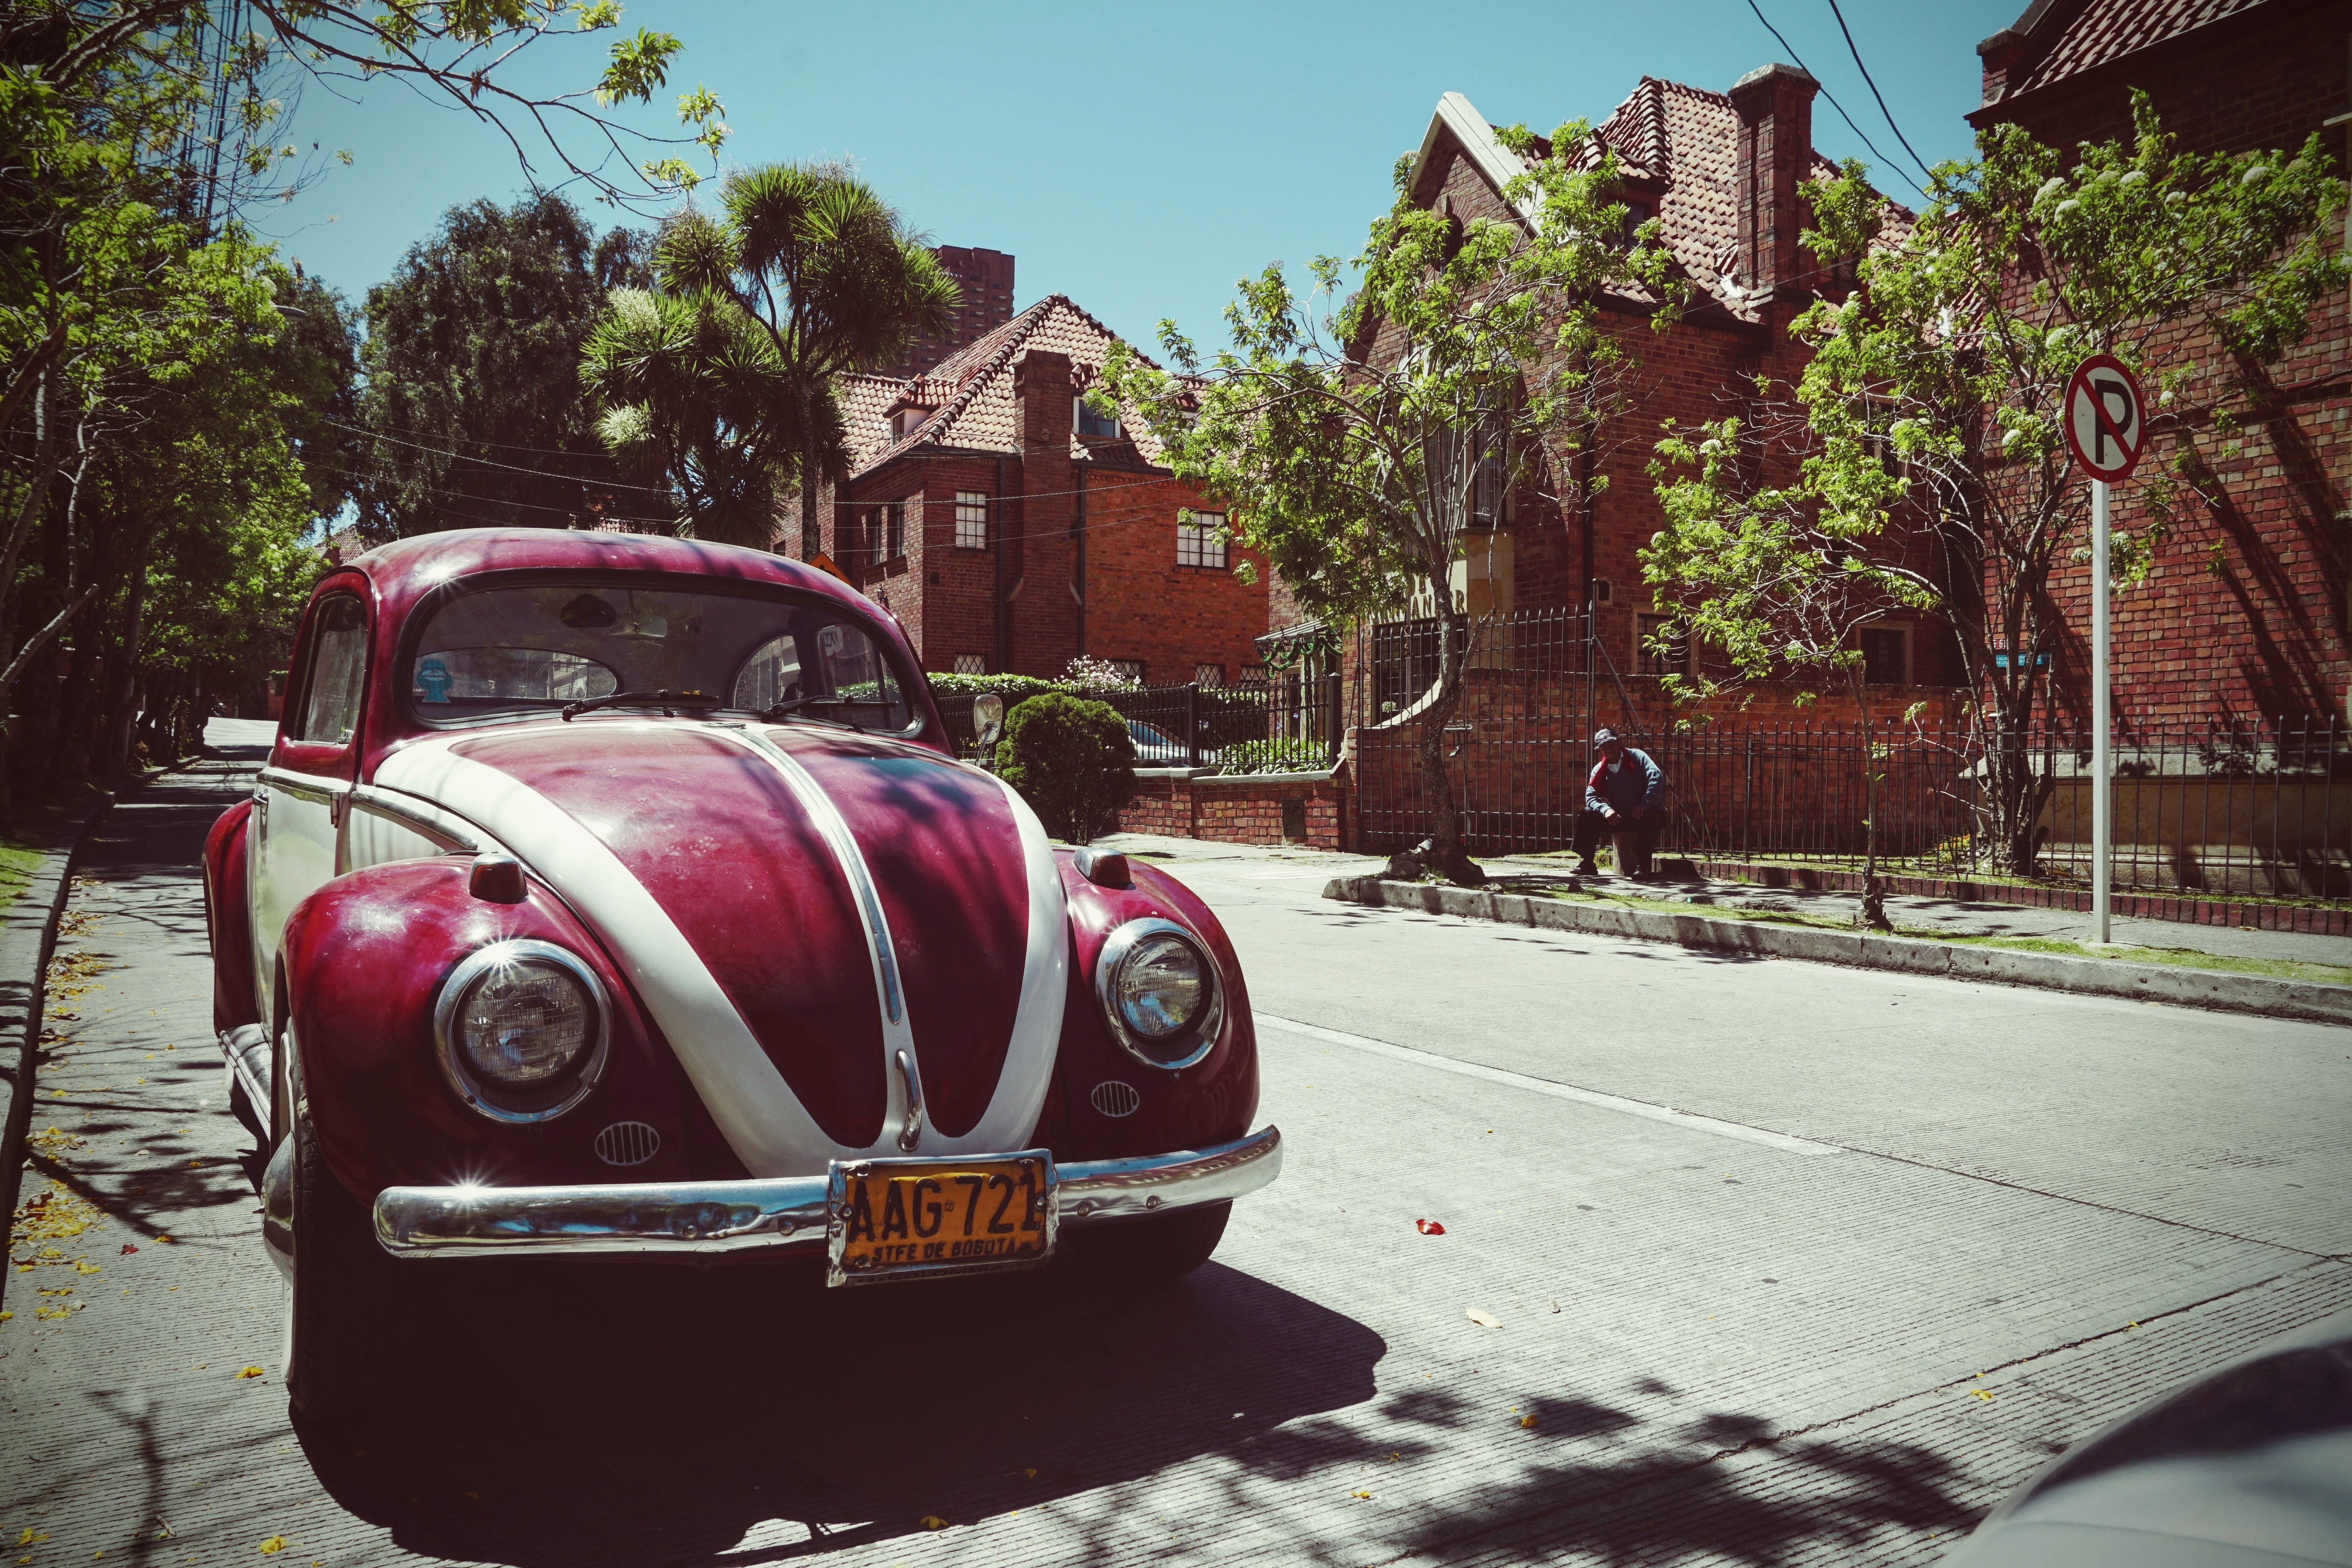 Red vintage Volkswagen Beetle parked on suburban street on sunny day in Bogotá